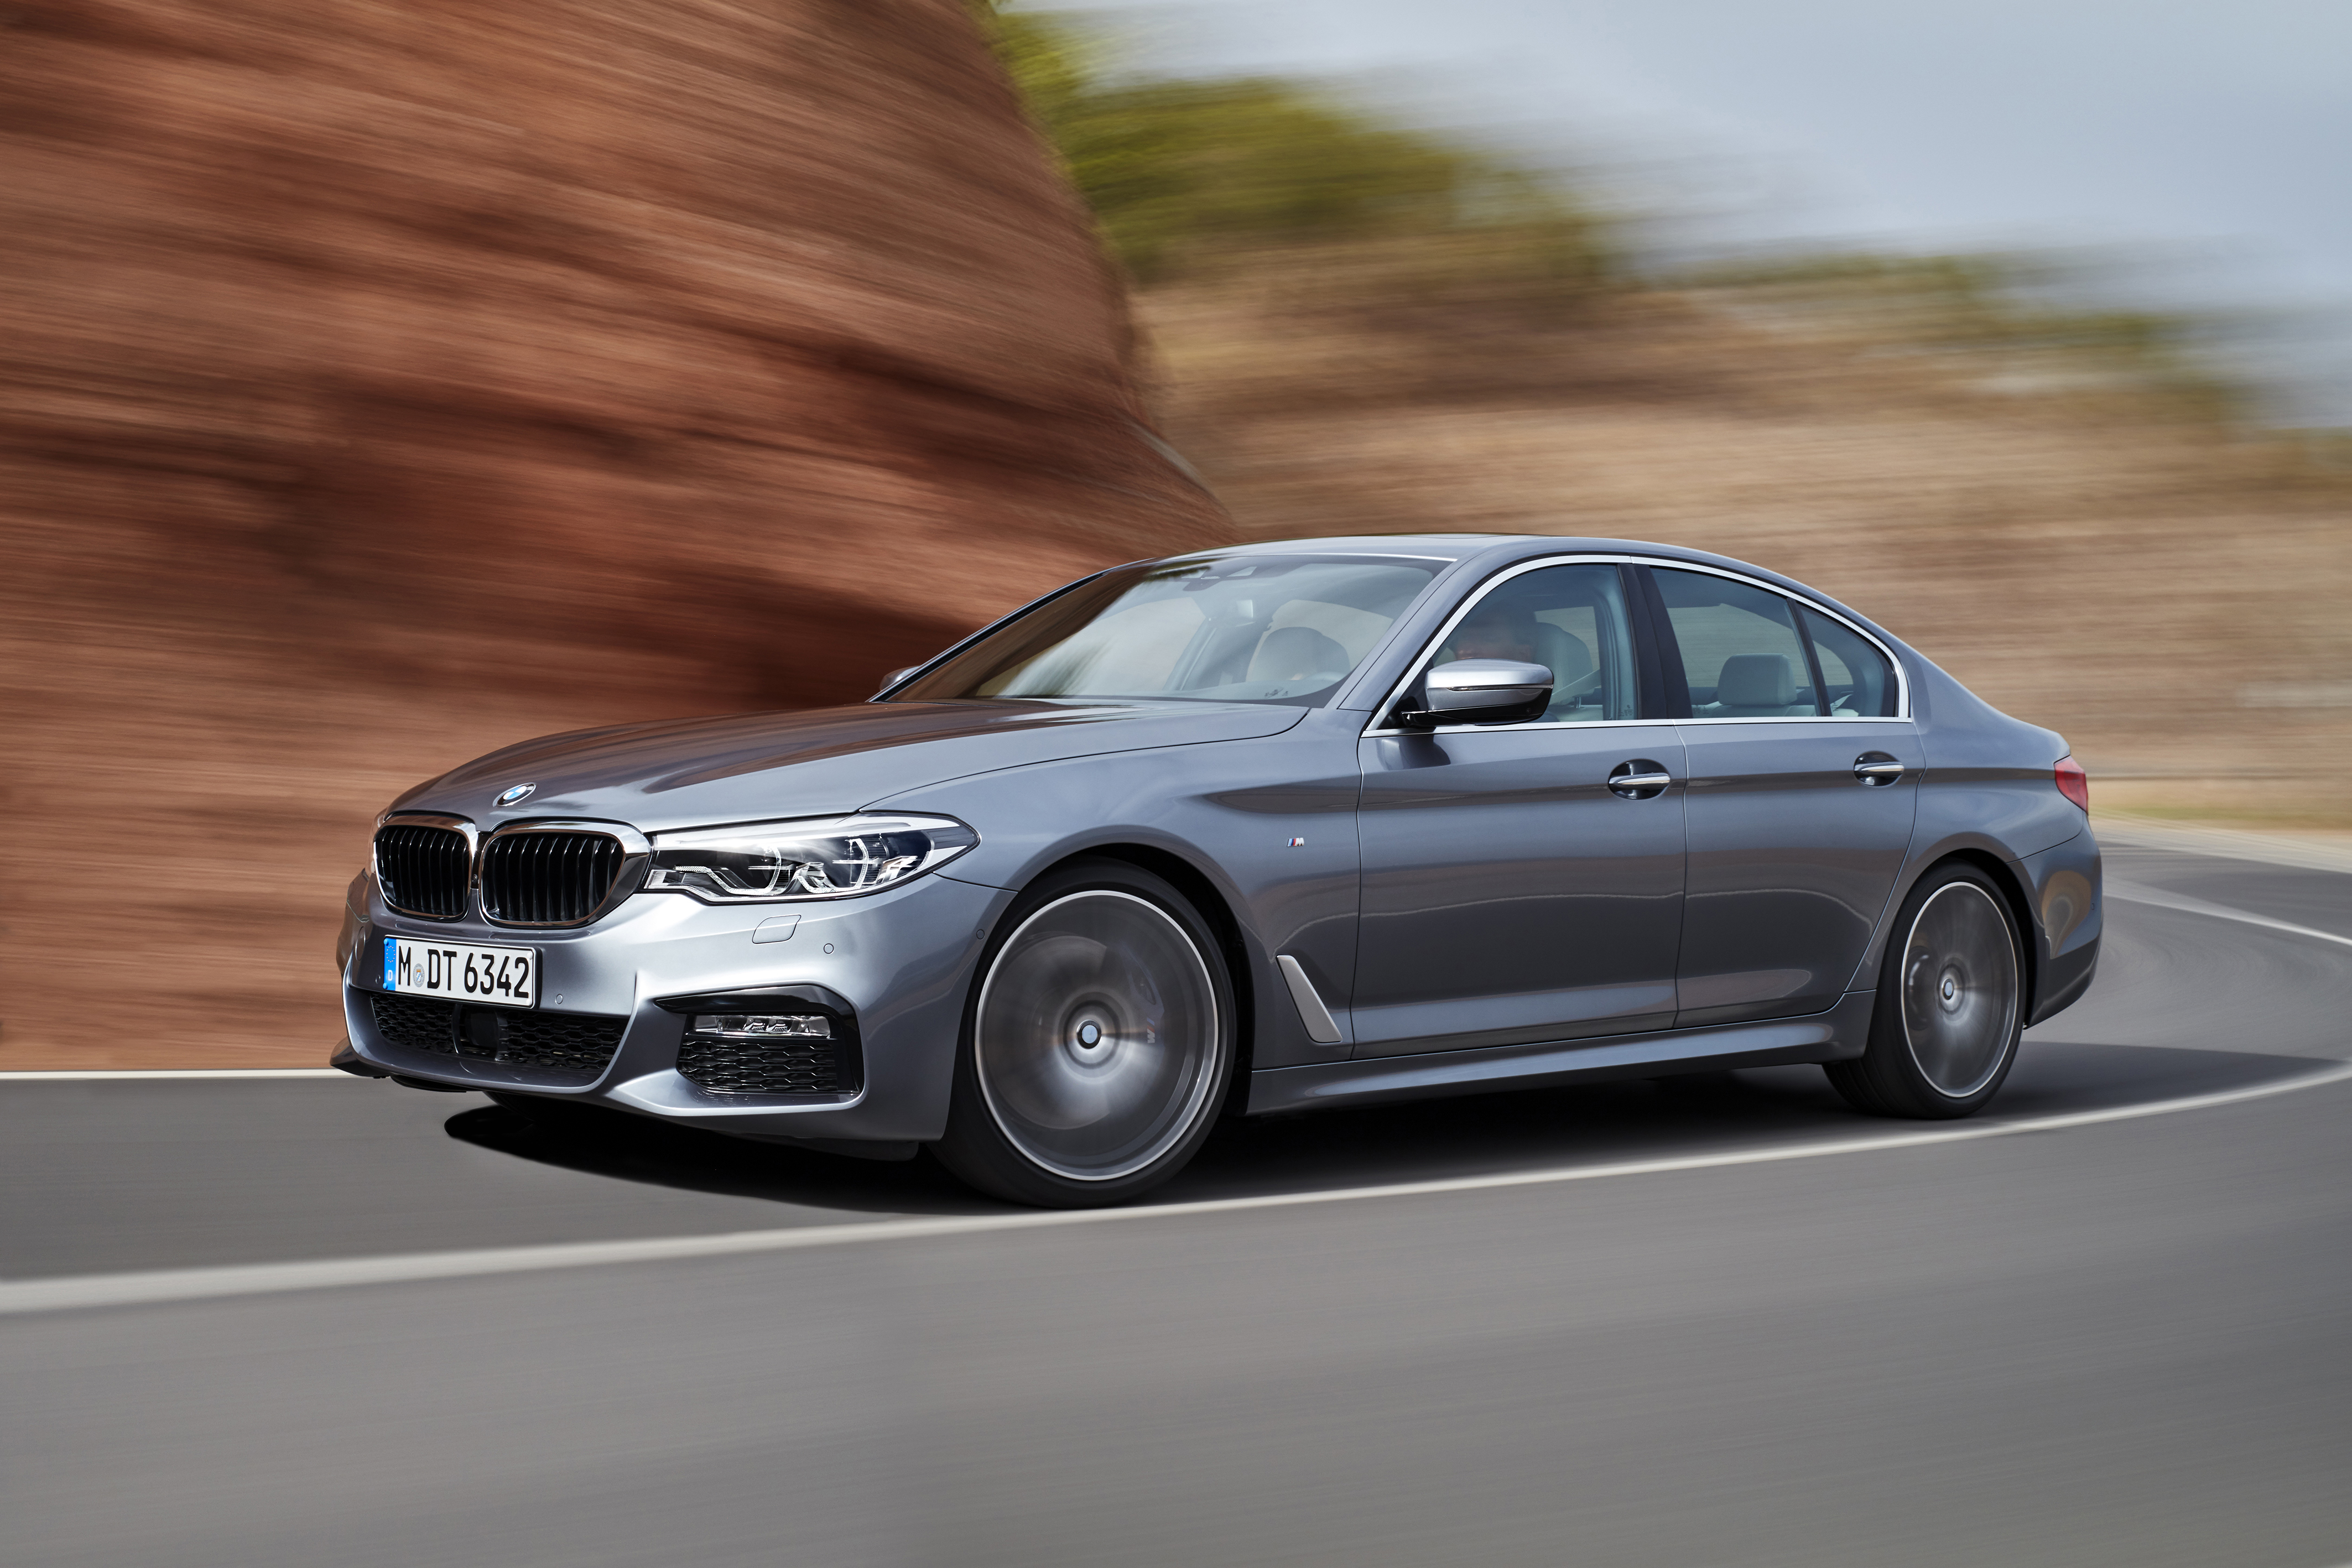 Interview: BMW North America's Corporate Sales Manager